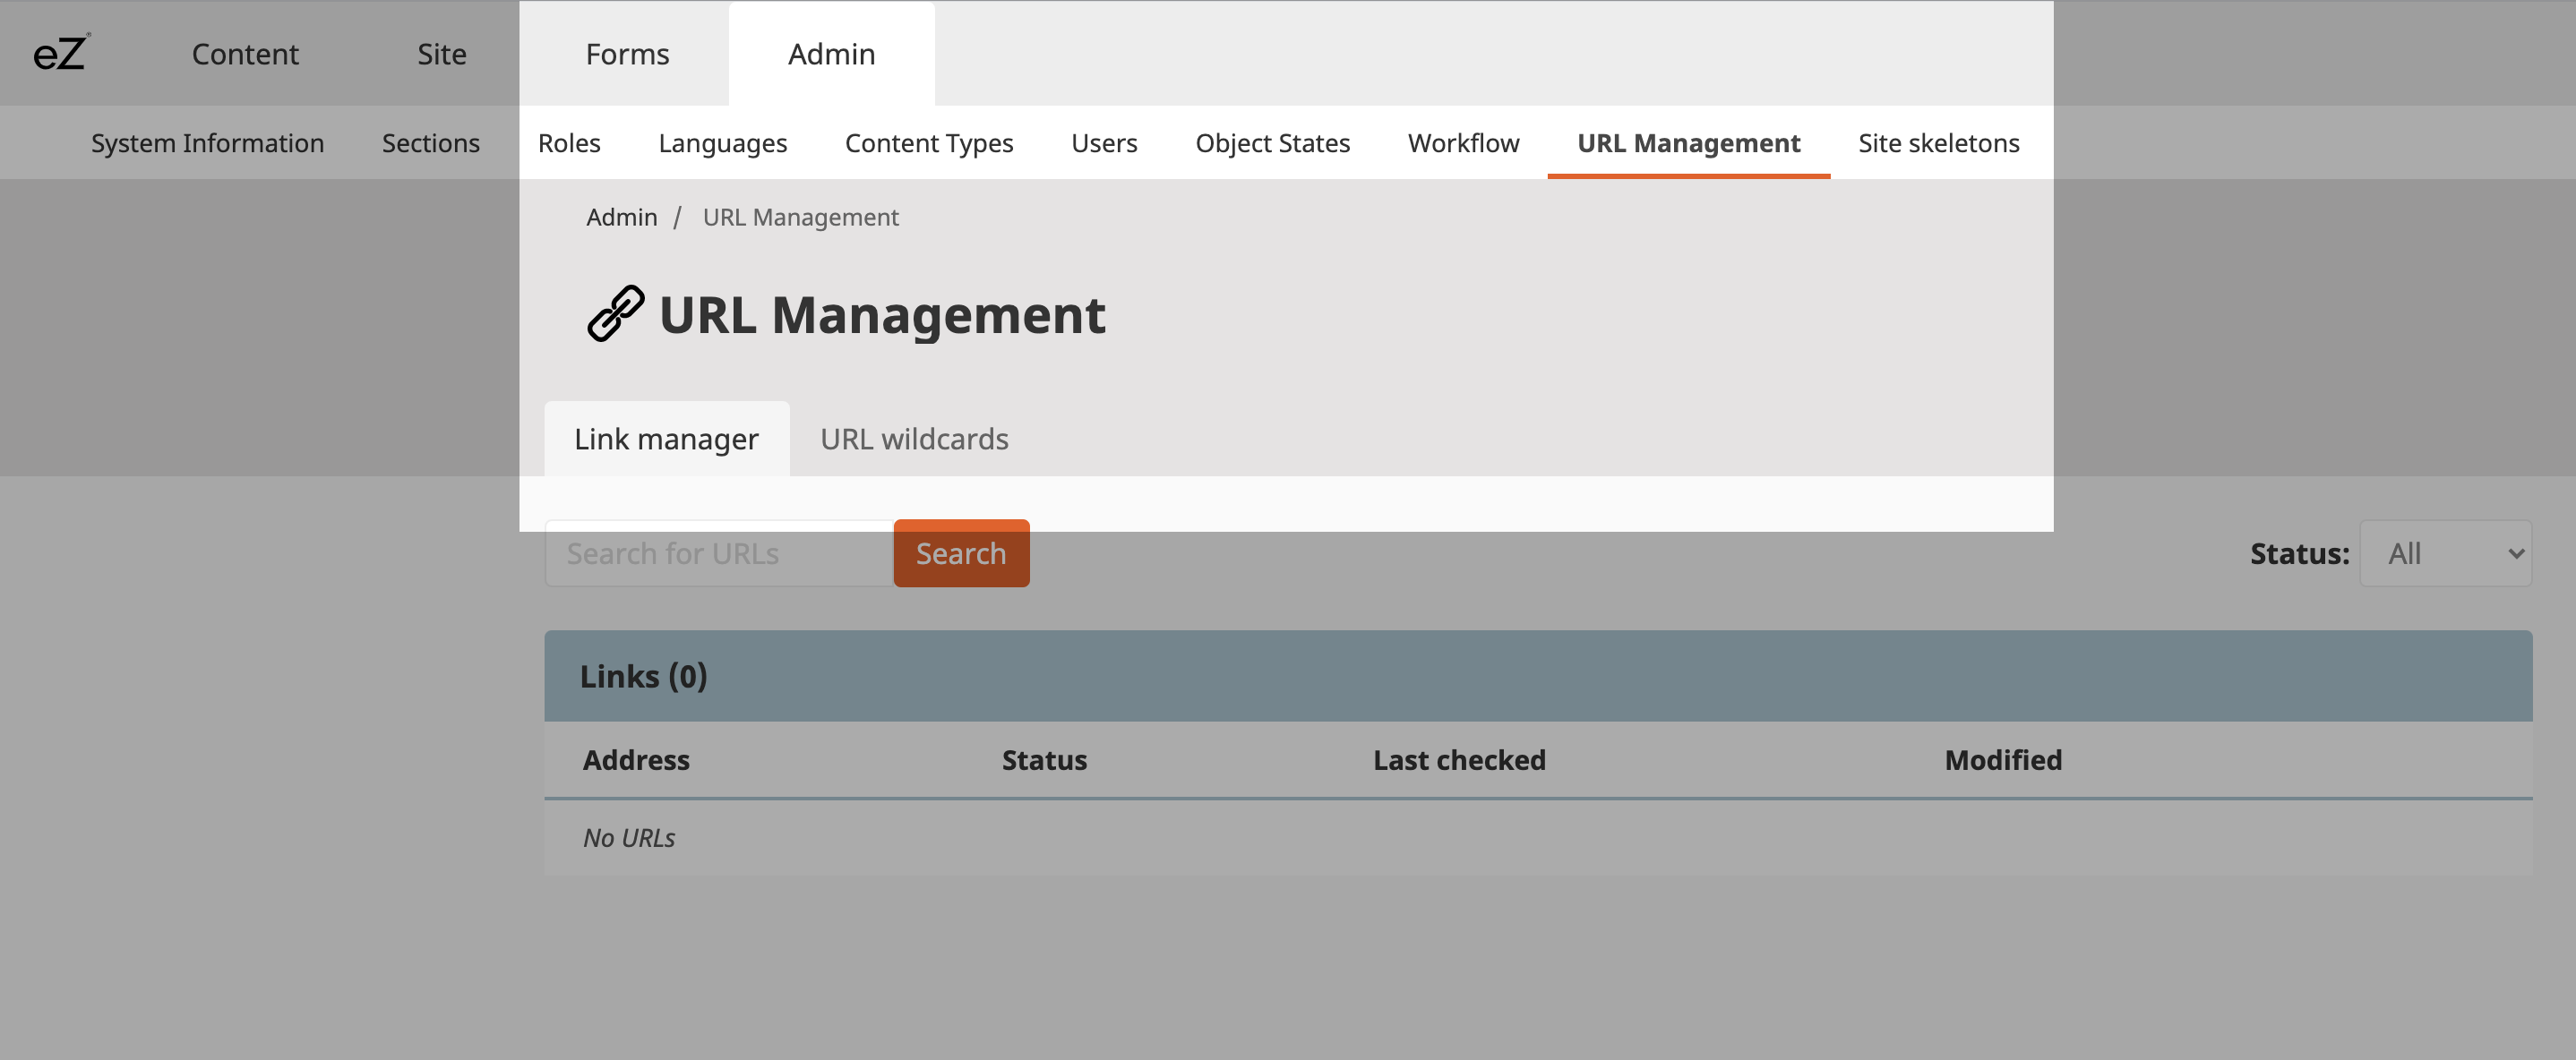 URL Management menu navigation in eZ Platform v3.1